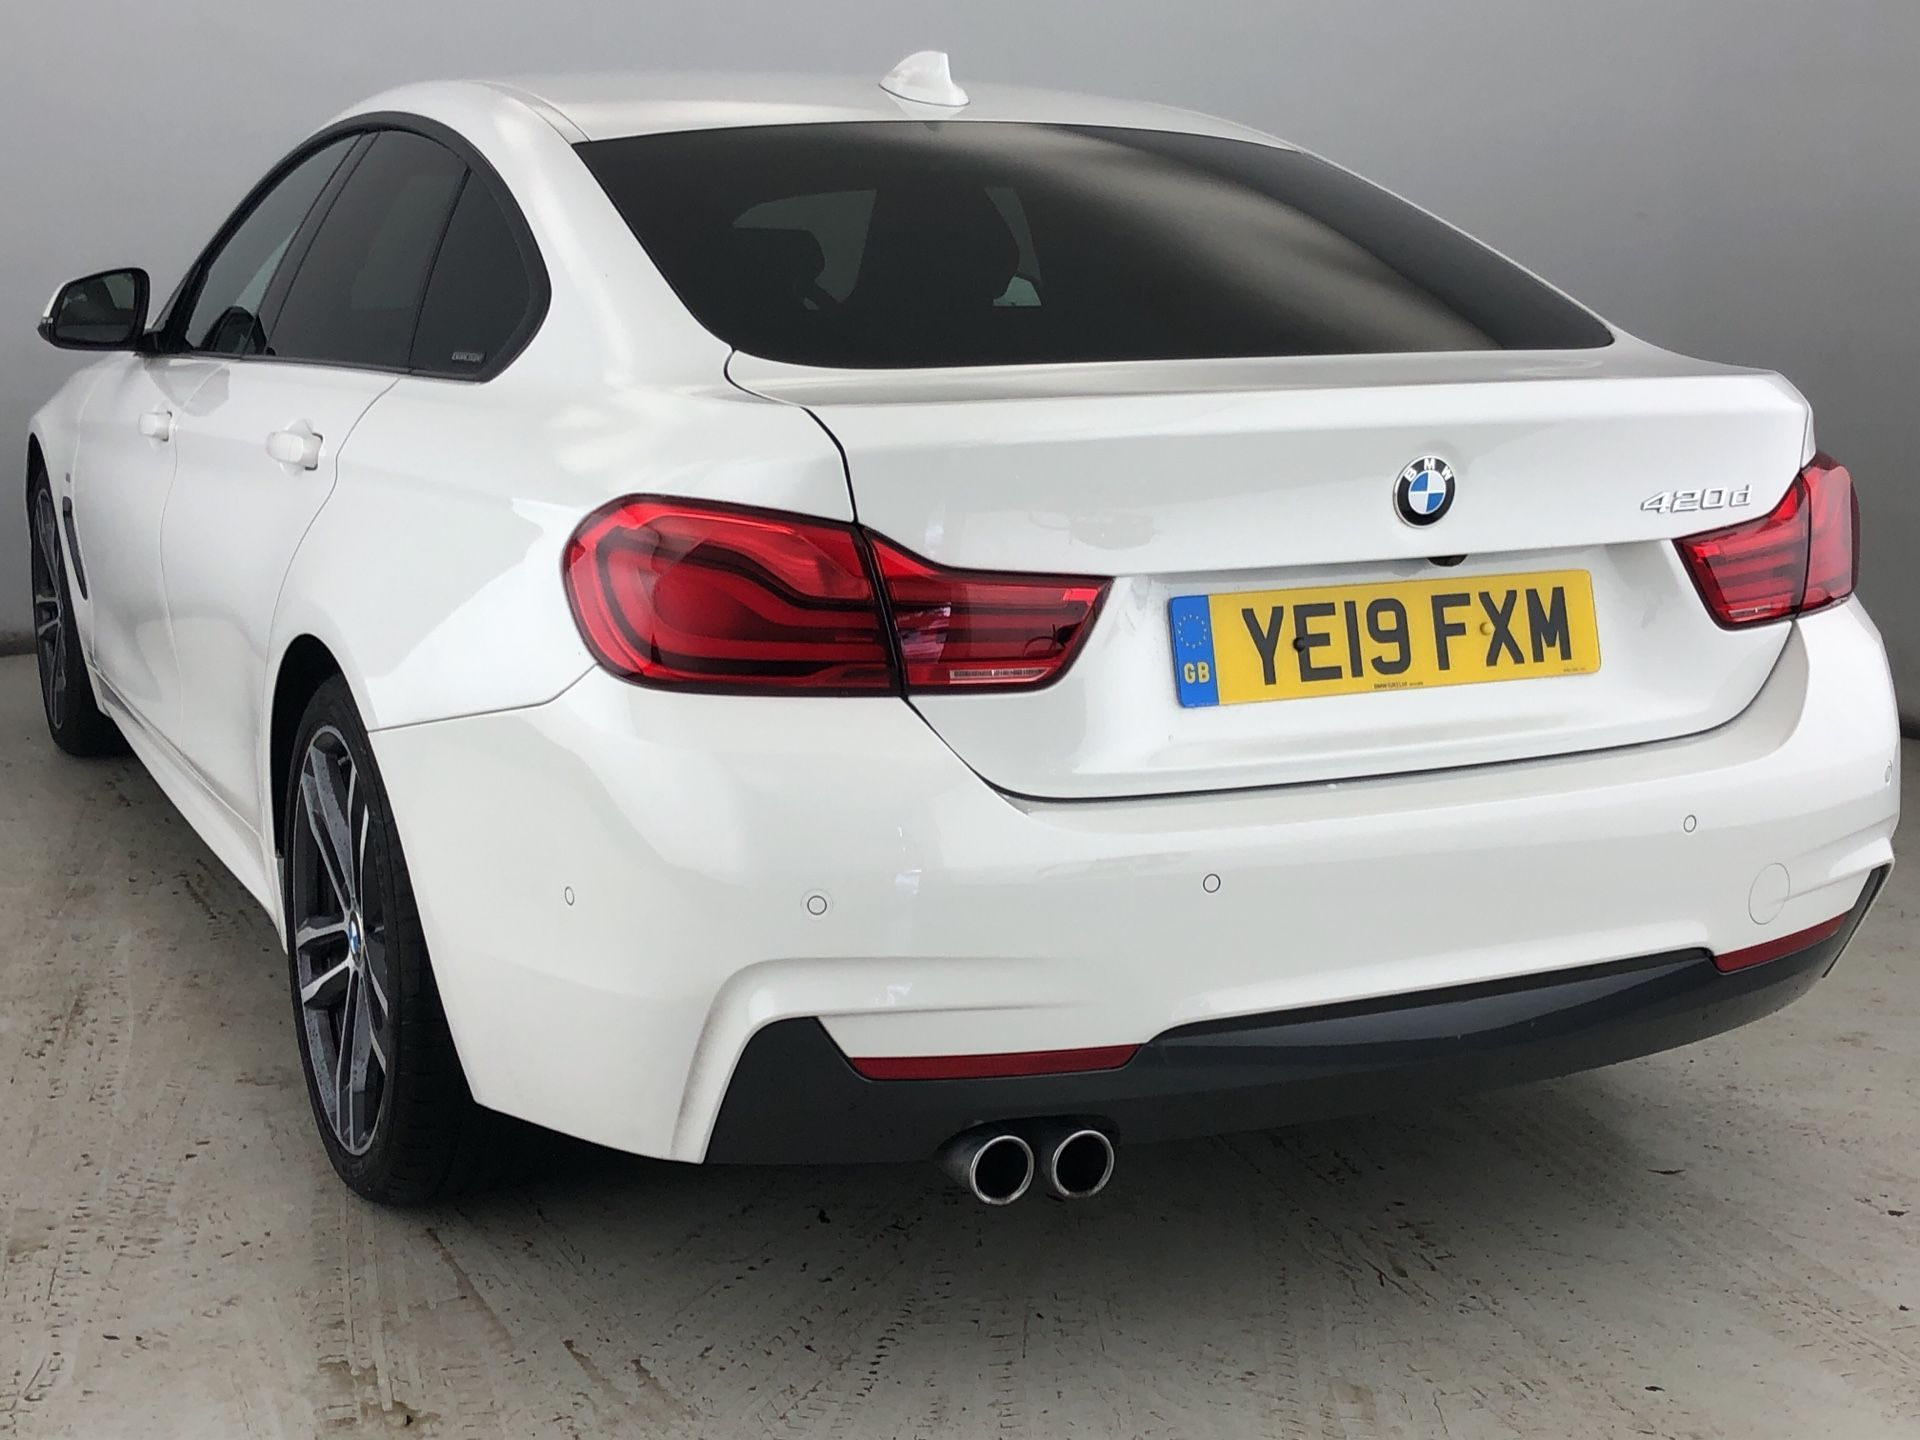 Image 2 - BMW 420d M Sport Gran Coupe (YE19FXM)